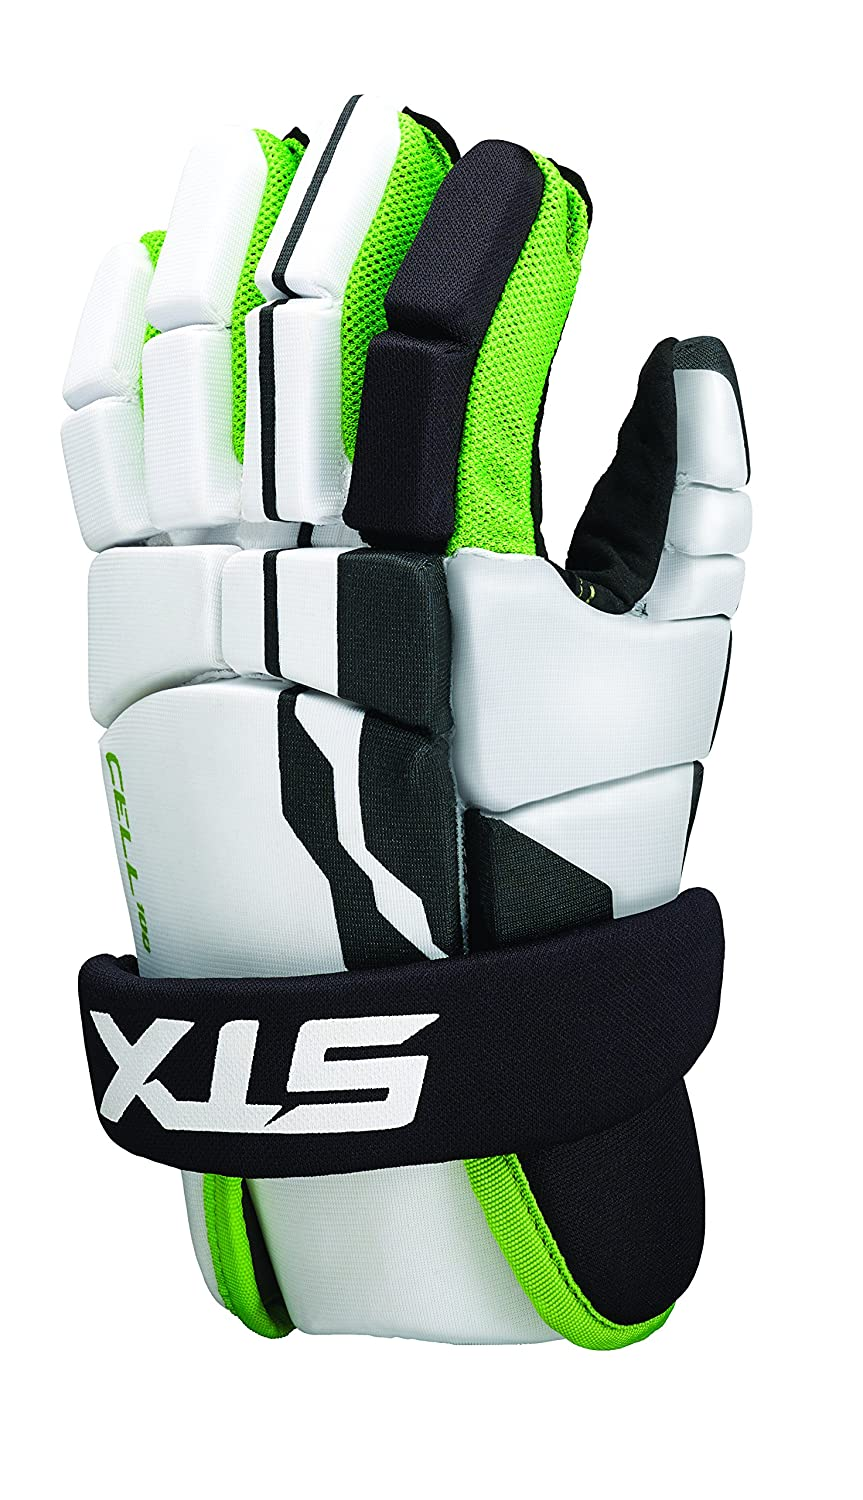 The Best Lacrosse Gloves 2